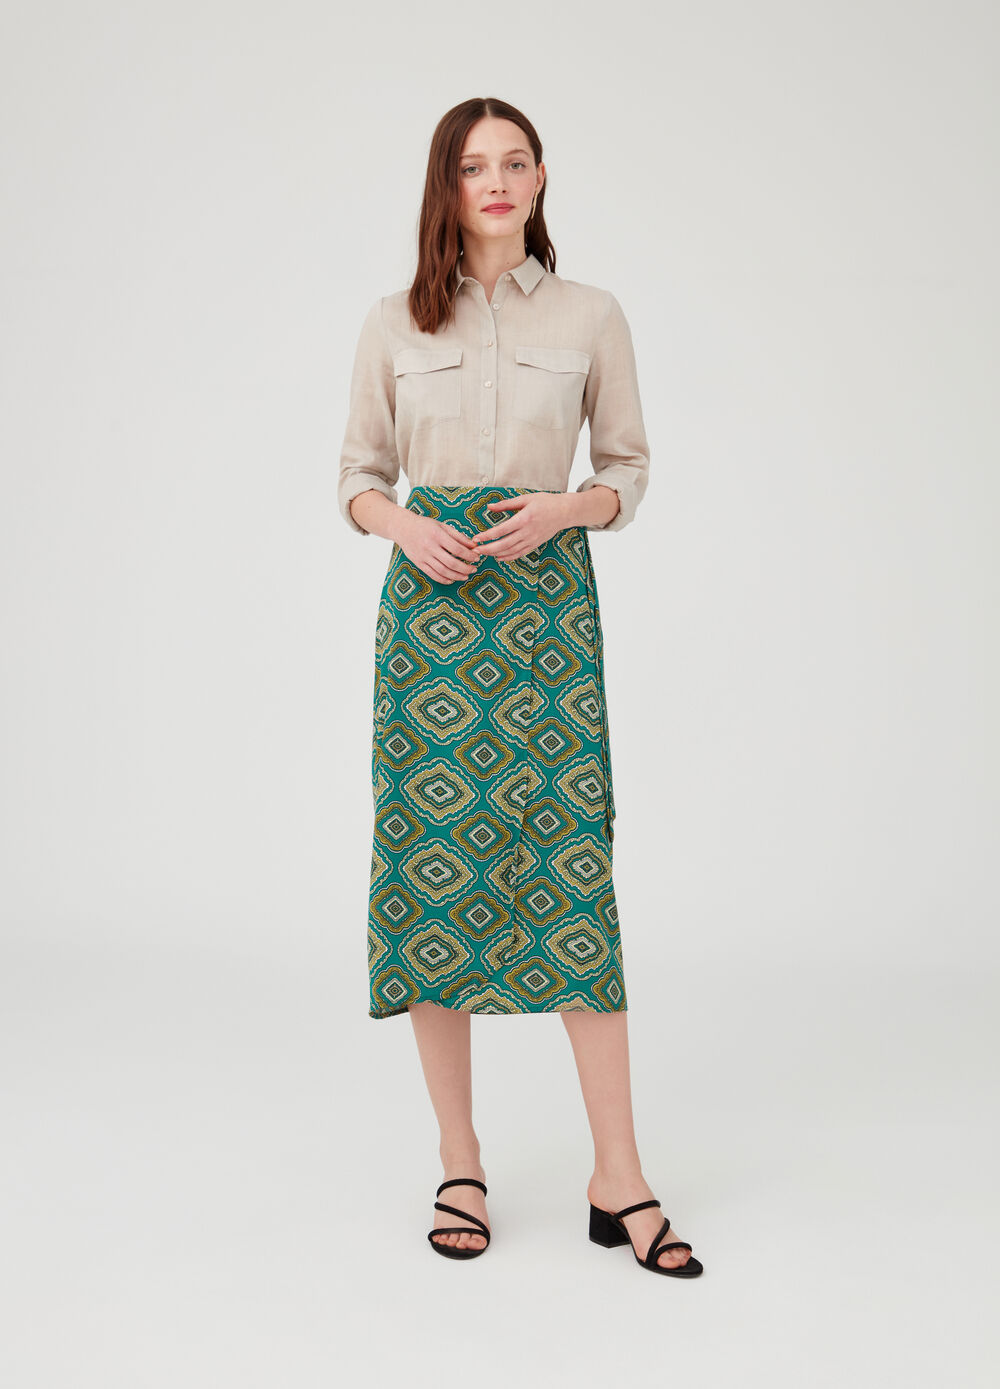 Long skirt with patterned sash waist